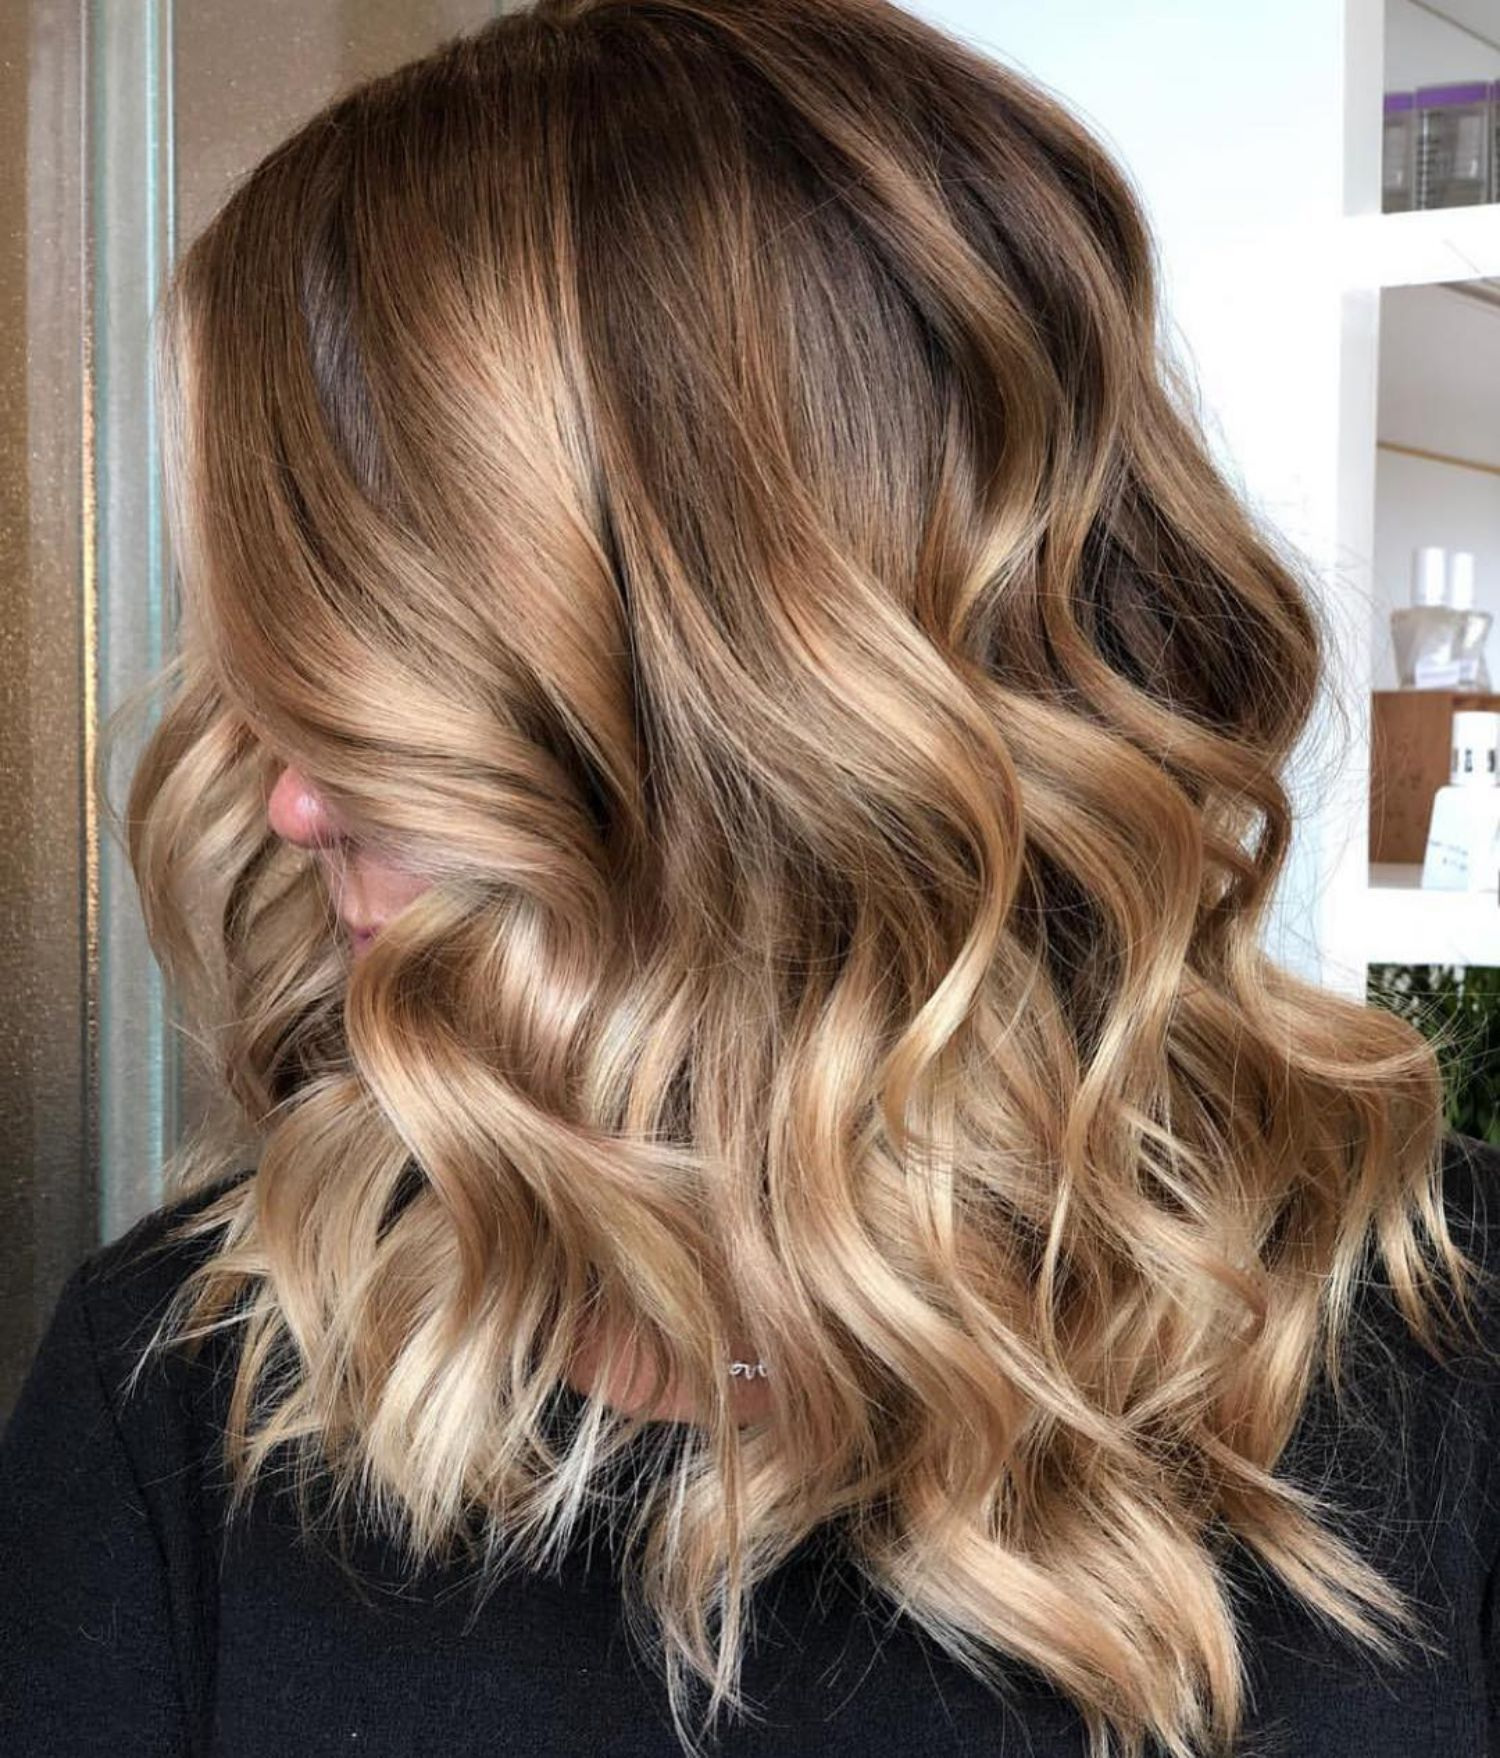 Light Caramel Balayage For Brown Hair Brown Hair With Blonde Highlights Brown Hair With Highlights Brown Blonde Hair